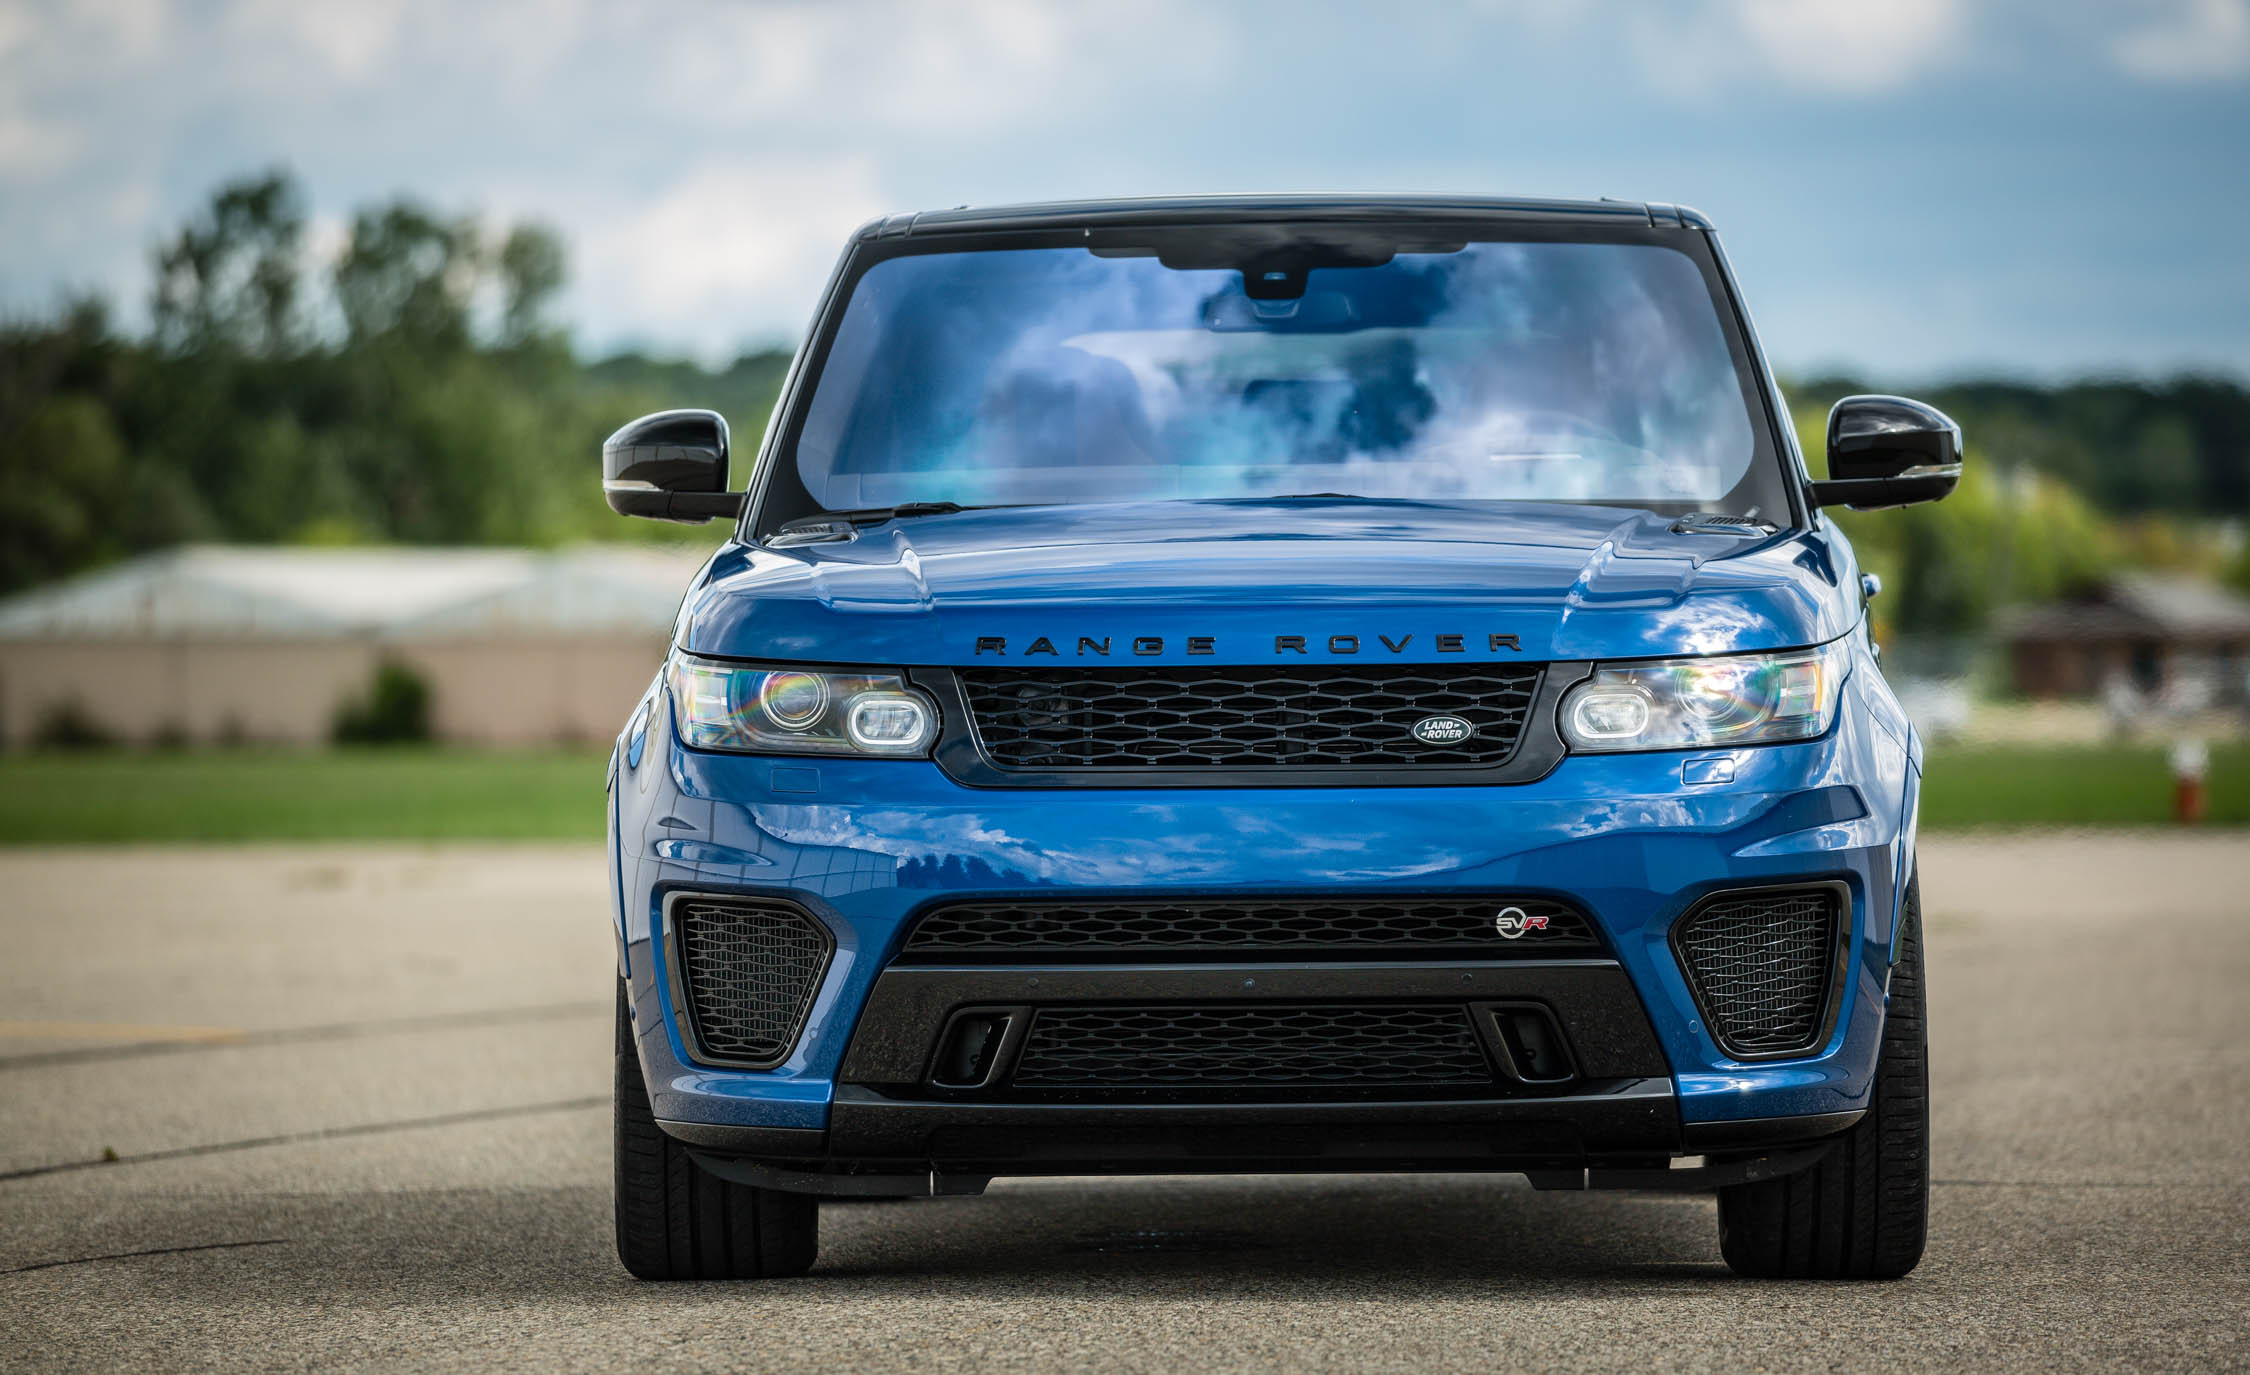 2016 Land Rover Range Rover Sport SVR (View 5 of 7)